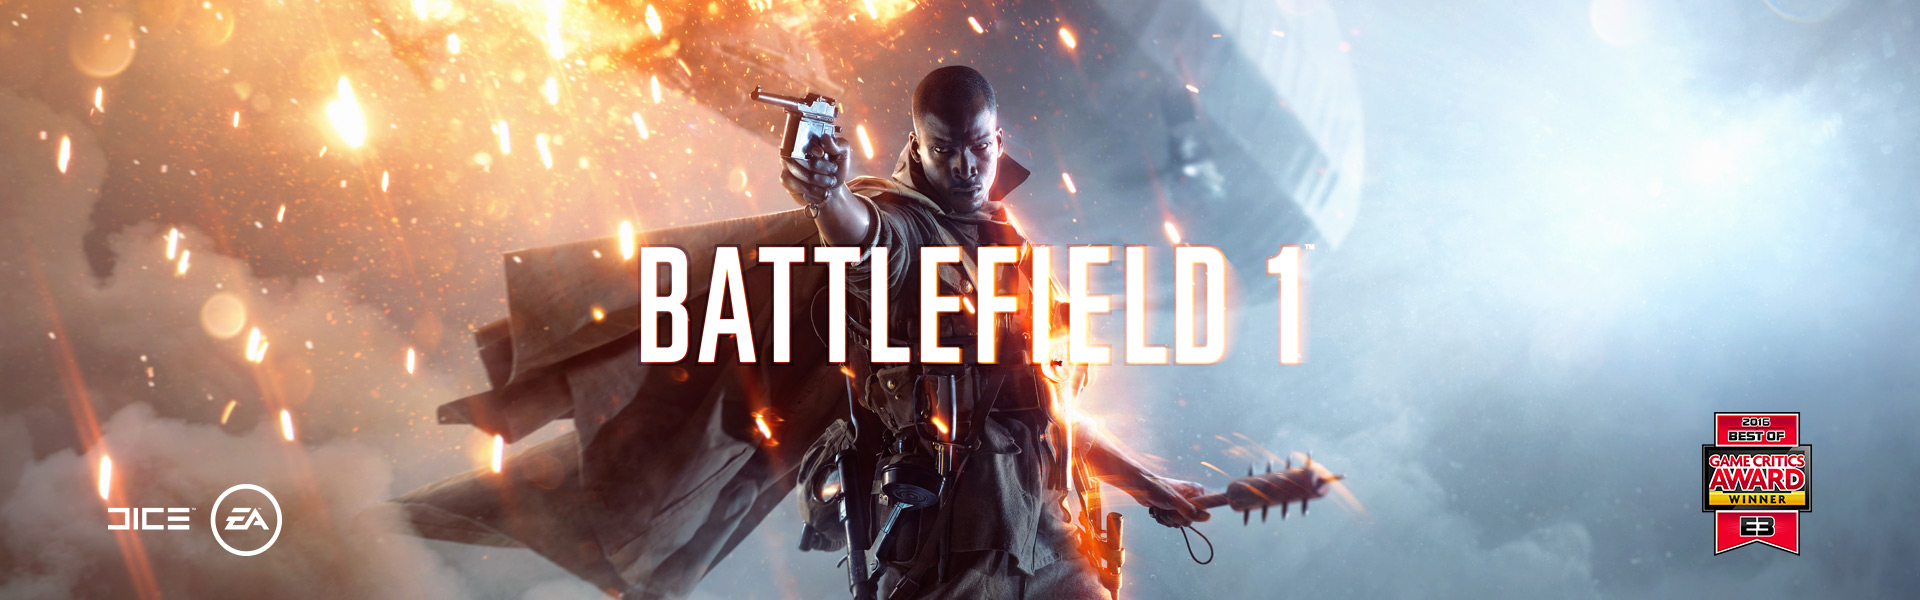 Battlefield 1 character facing forwards while pointing gun, holding grenade, and a zeppelin on fire in the background